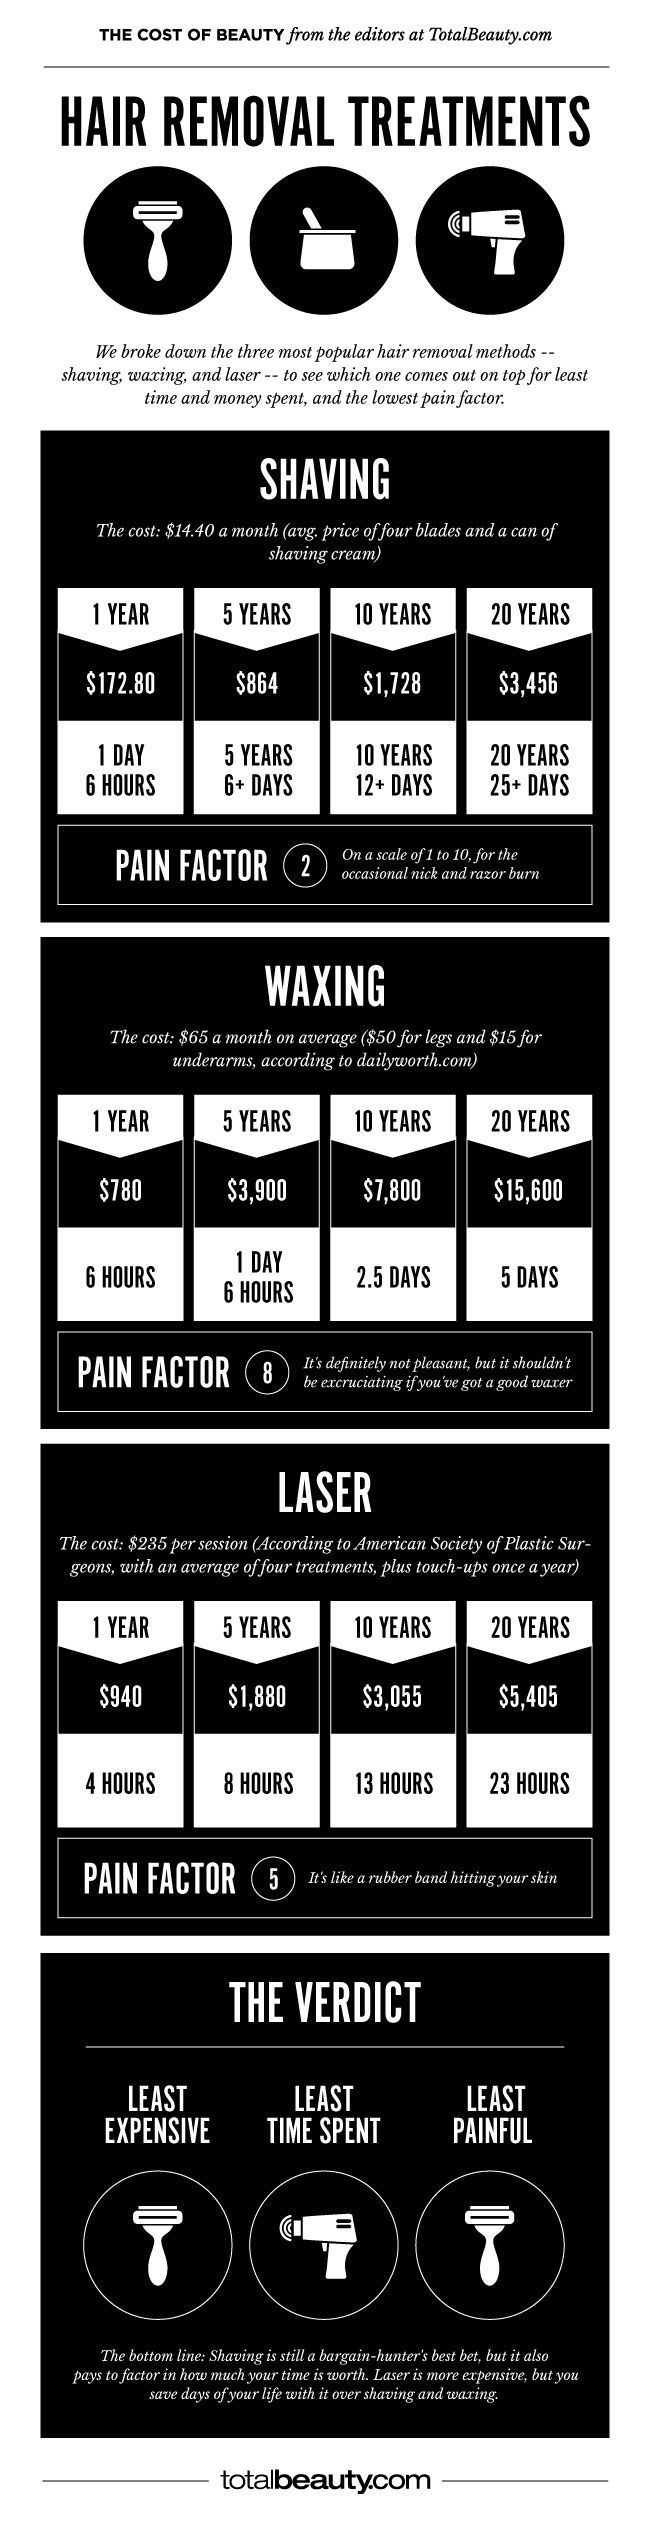 Shaving vs. Waxing vs. Laser: How Much  Does Each Cost Over a Lifetime? #laserhairremoval #laser #infographic